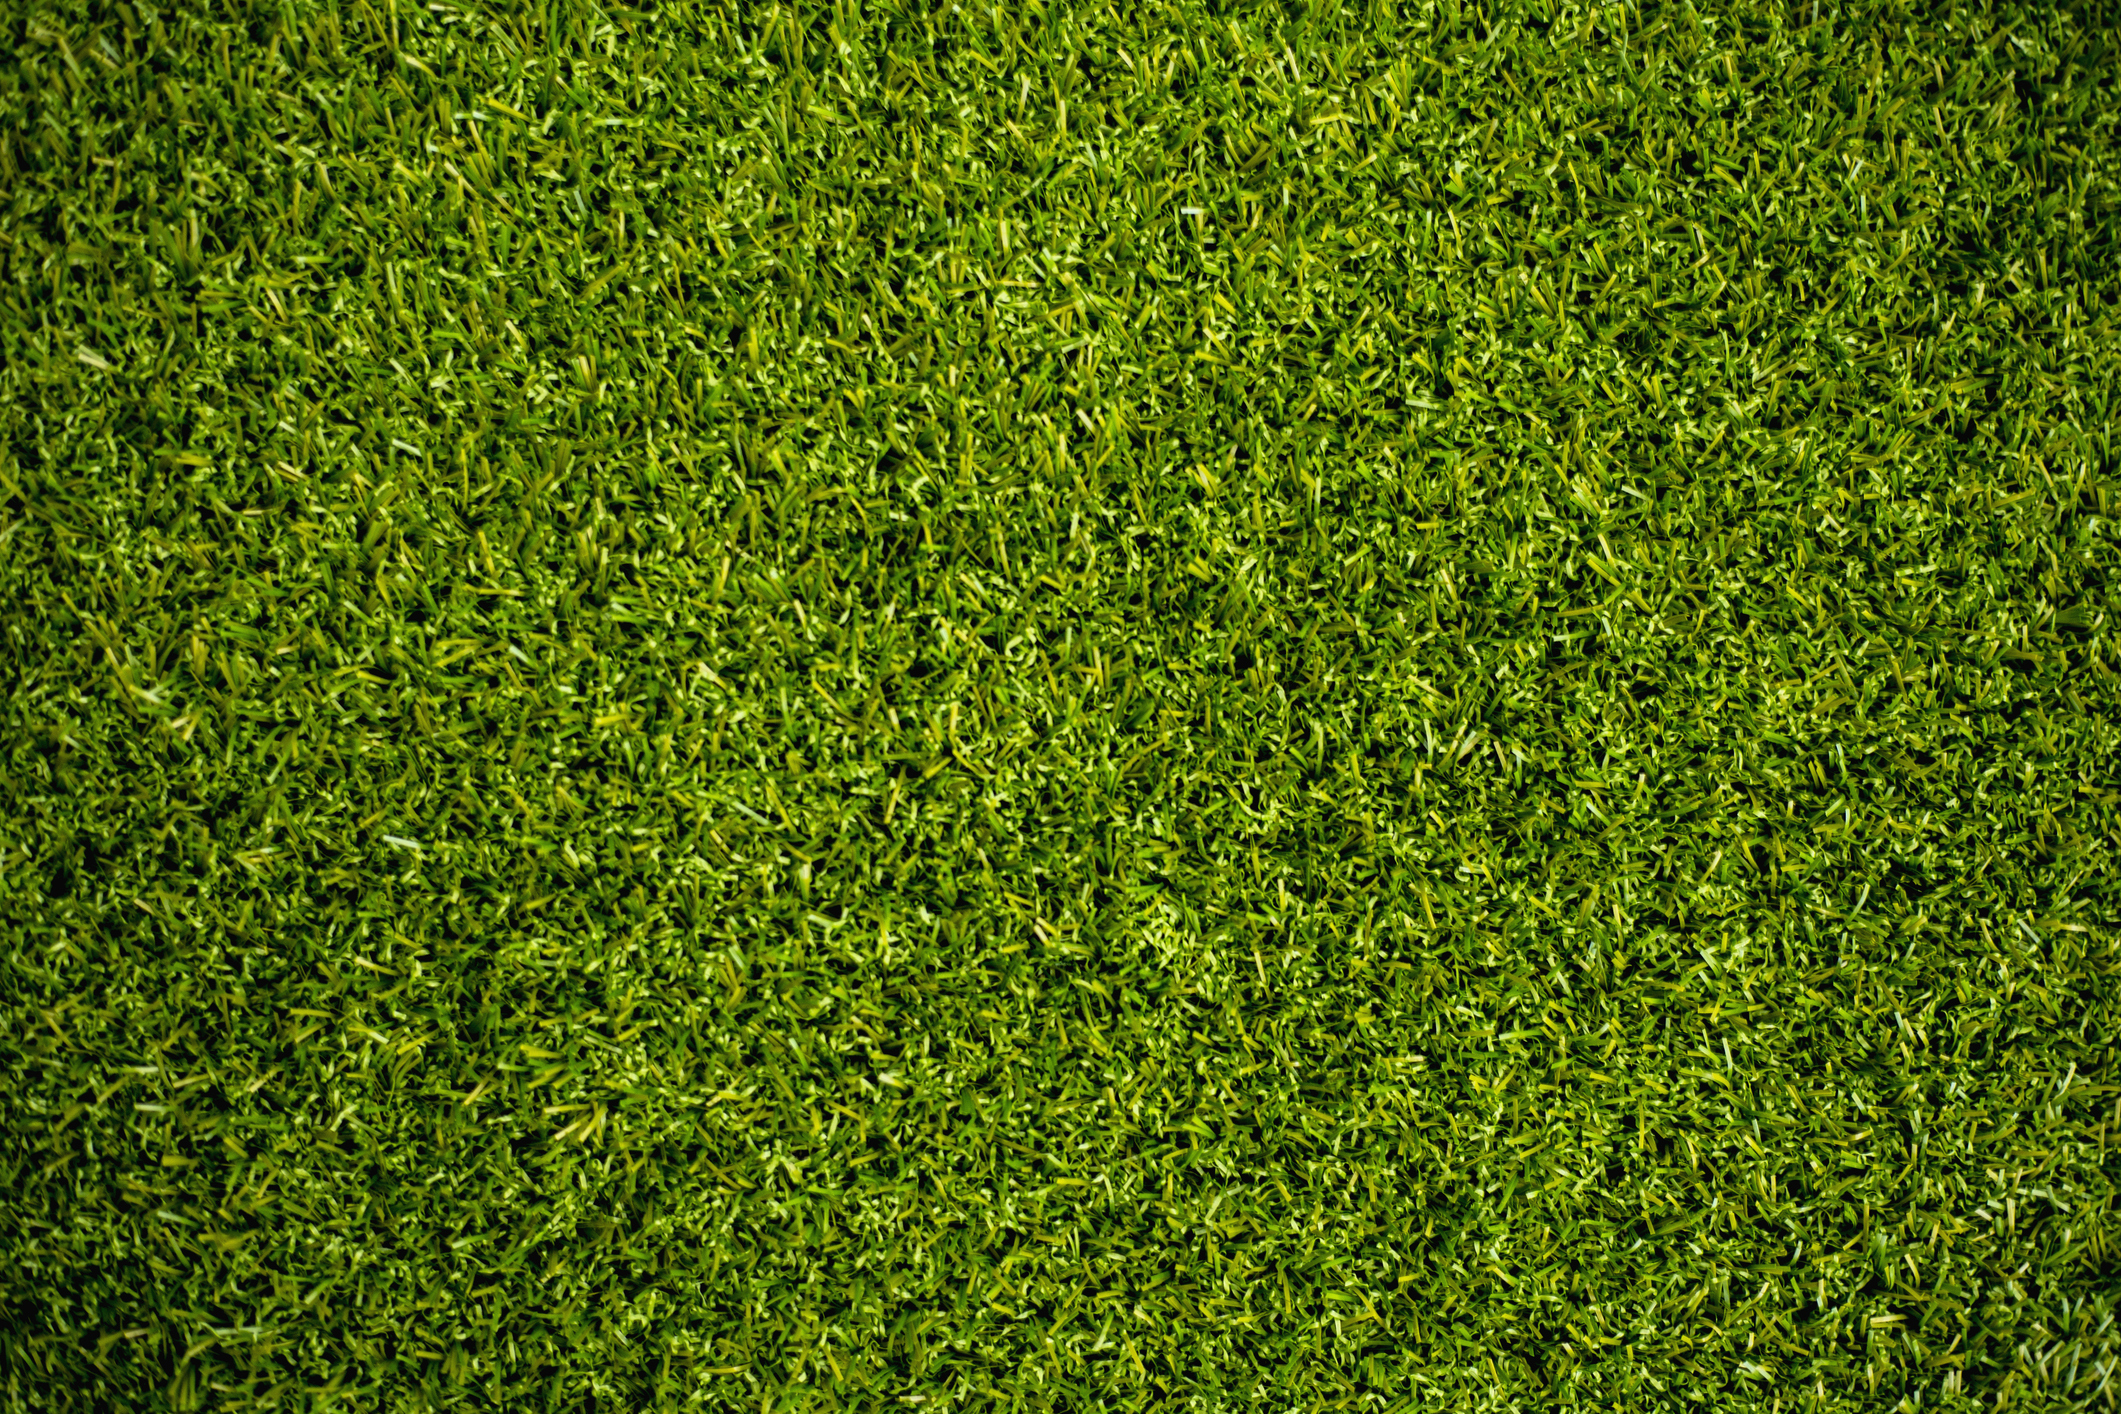 Artificial Grass - Artificial grass is an excellent alternative to sod and other xeriscape options such as river rock or mulch. With artificial grass you get the benefit of absolute low maintenance. No longer will you need to worry about mowing, weeding, and watering. Turf will stay green and lush throughout the year.